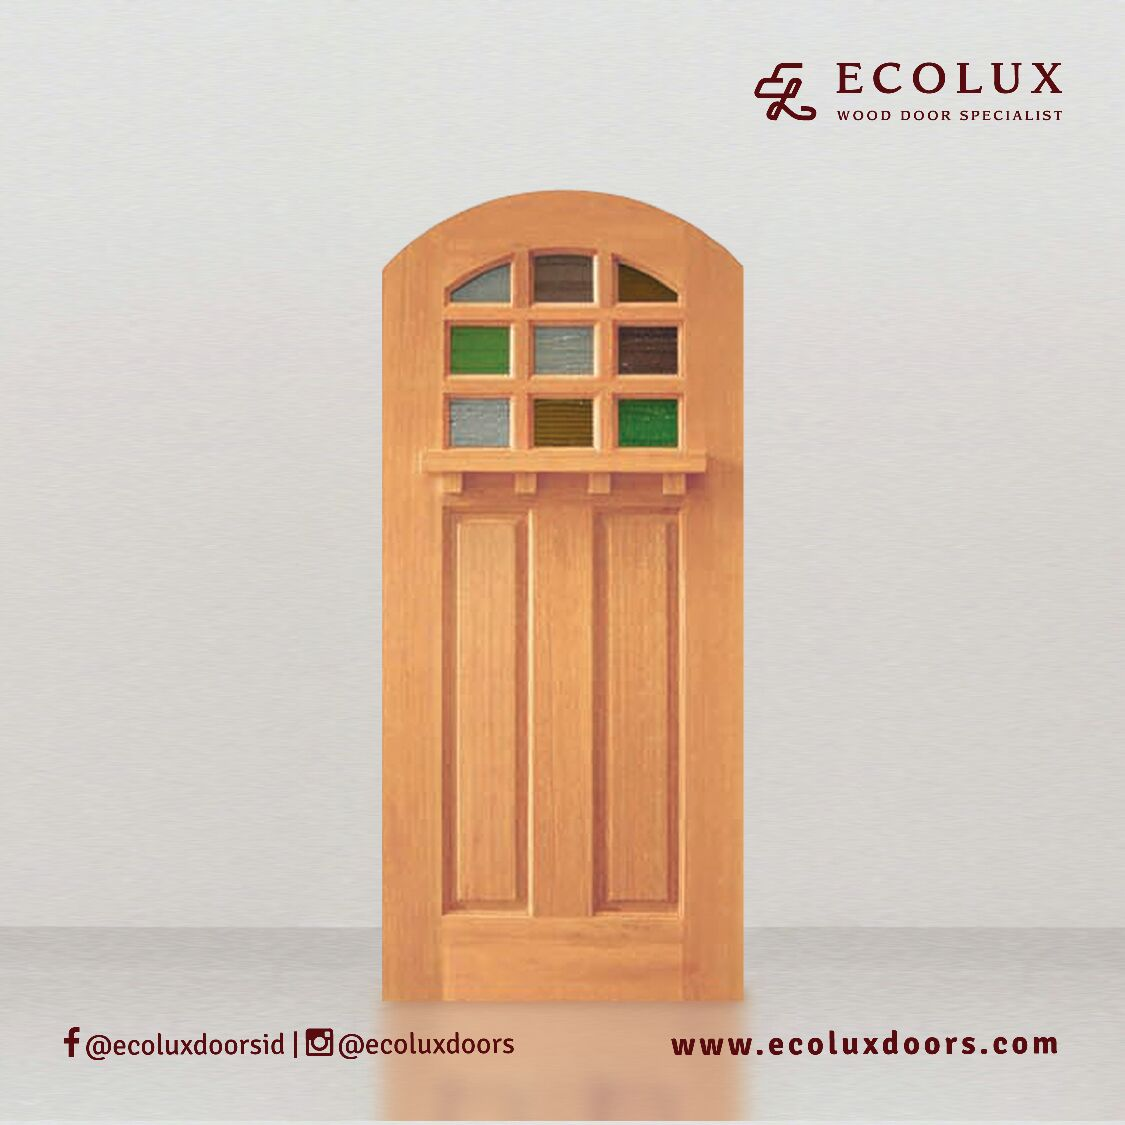 High Quality Press Door, Teak Wood Door Model and Design for House